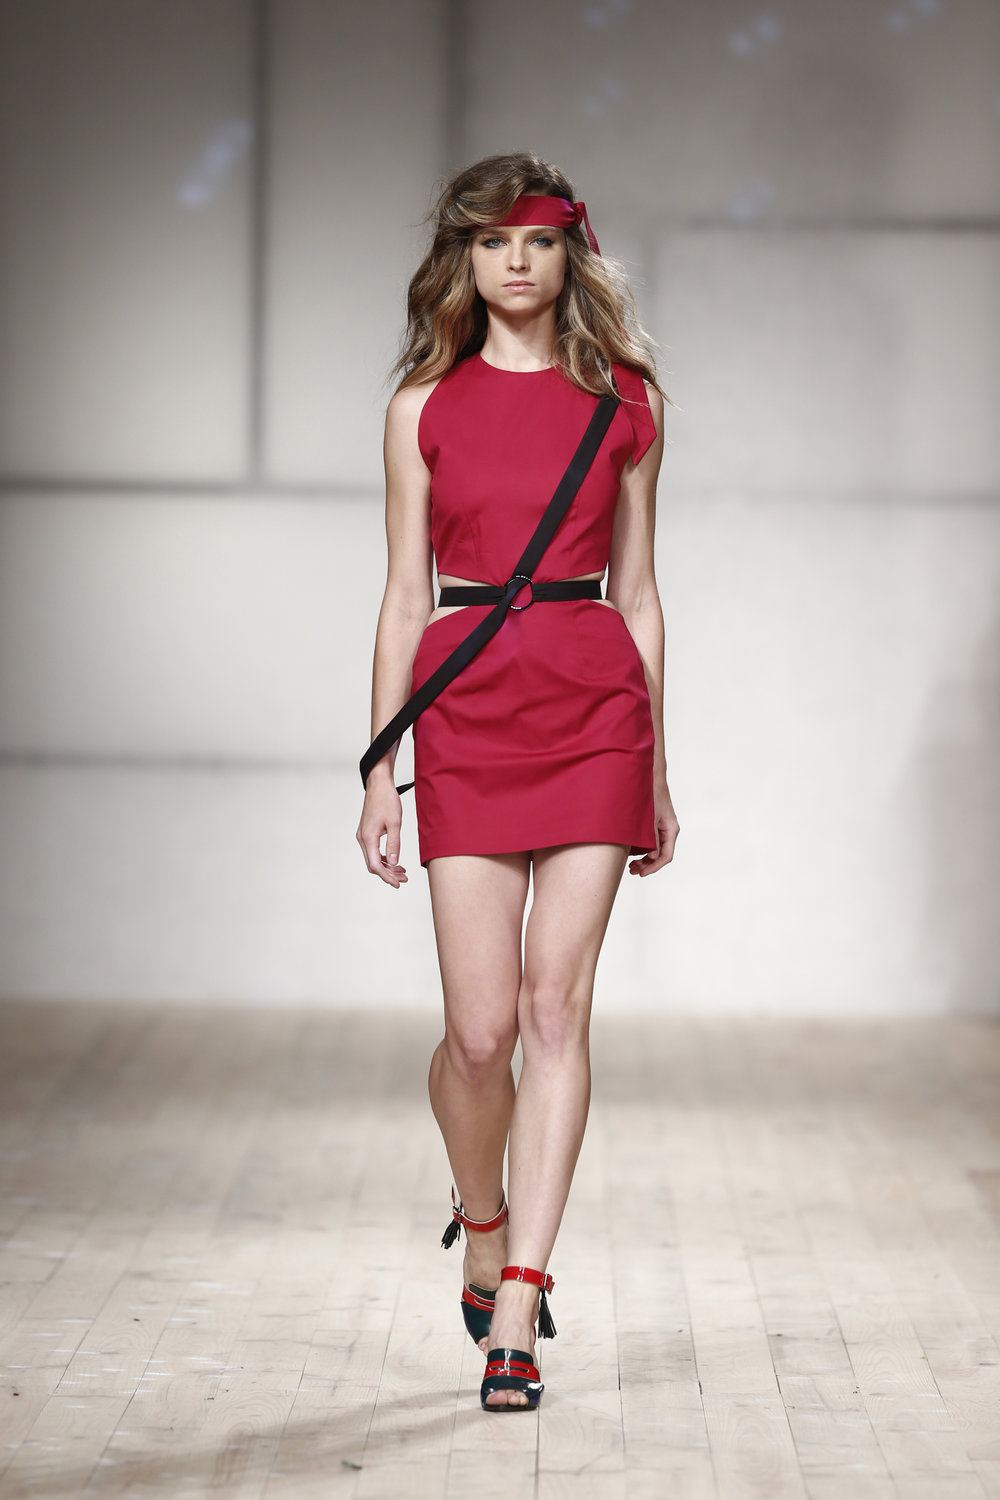 Pink dress with black sashes and belt  One available size 36 Original Price 378€ | Discount Price 189€ Ref. LCss17s27